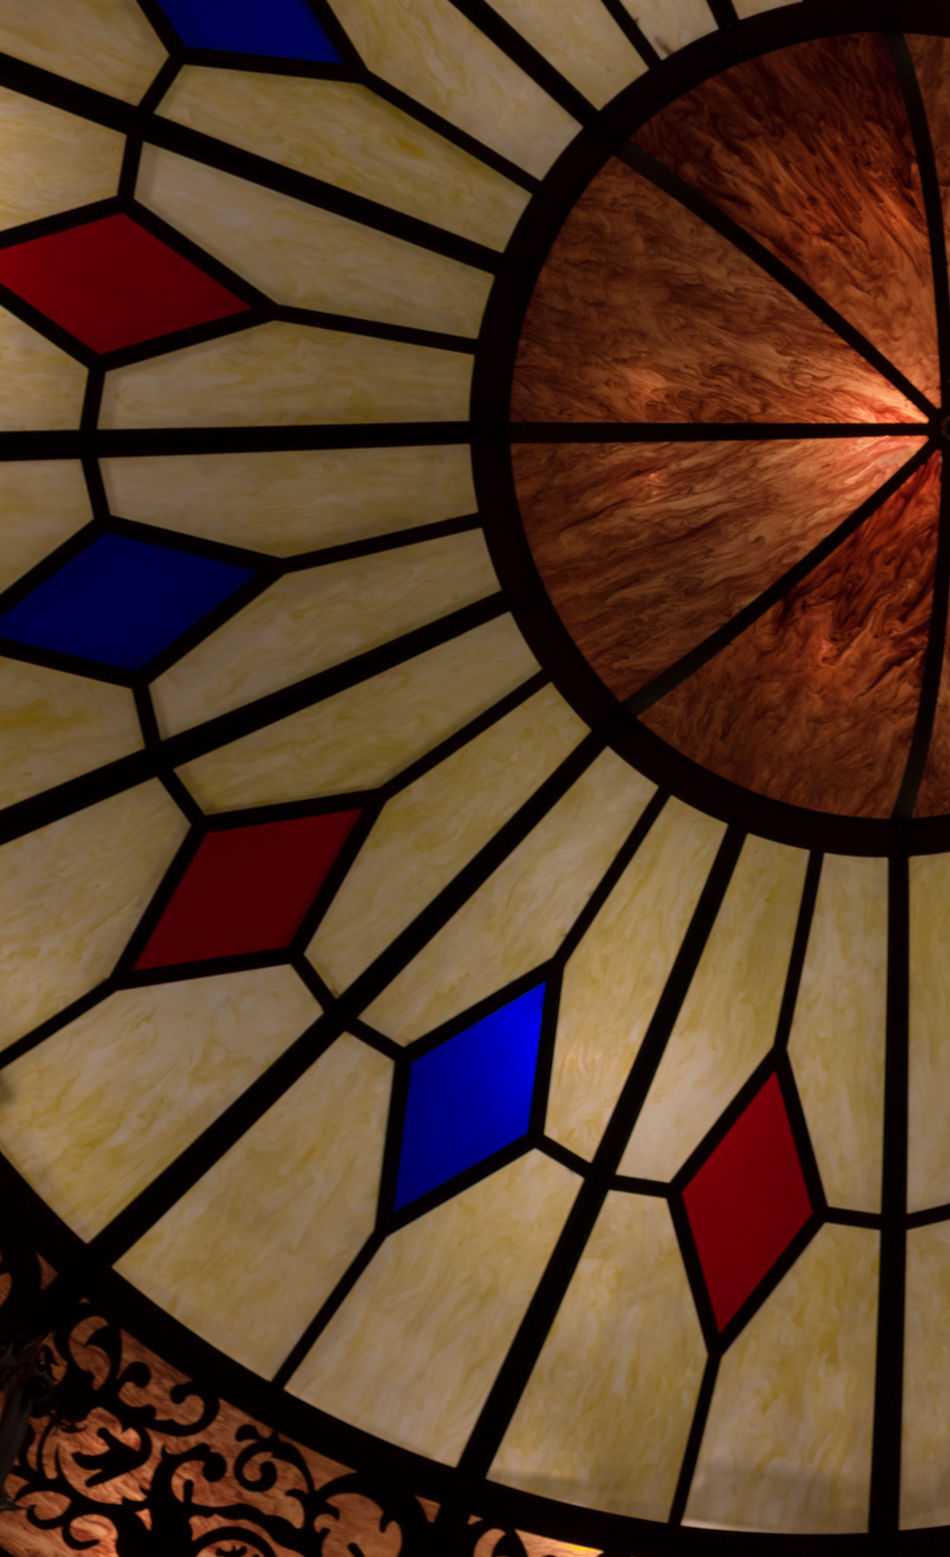 Architecture Circle Circular Close-up Colorful Glass Indoors  Light Light Fixture Lookingup Low Angle View No People Pattern Round